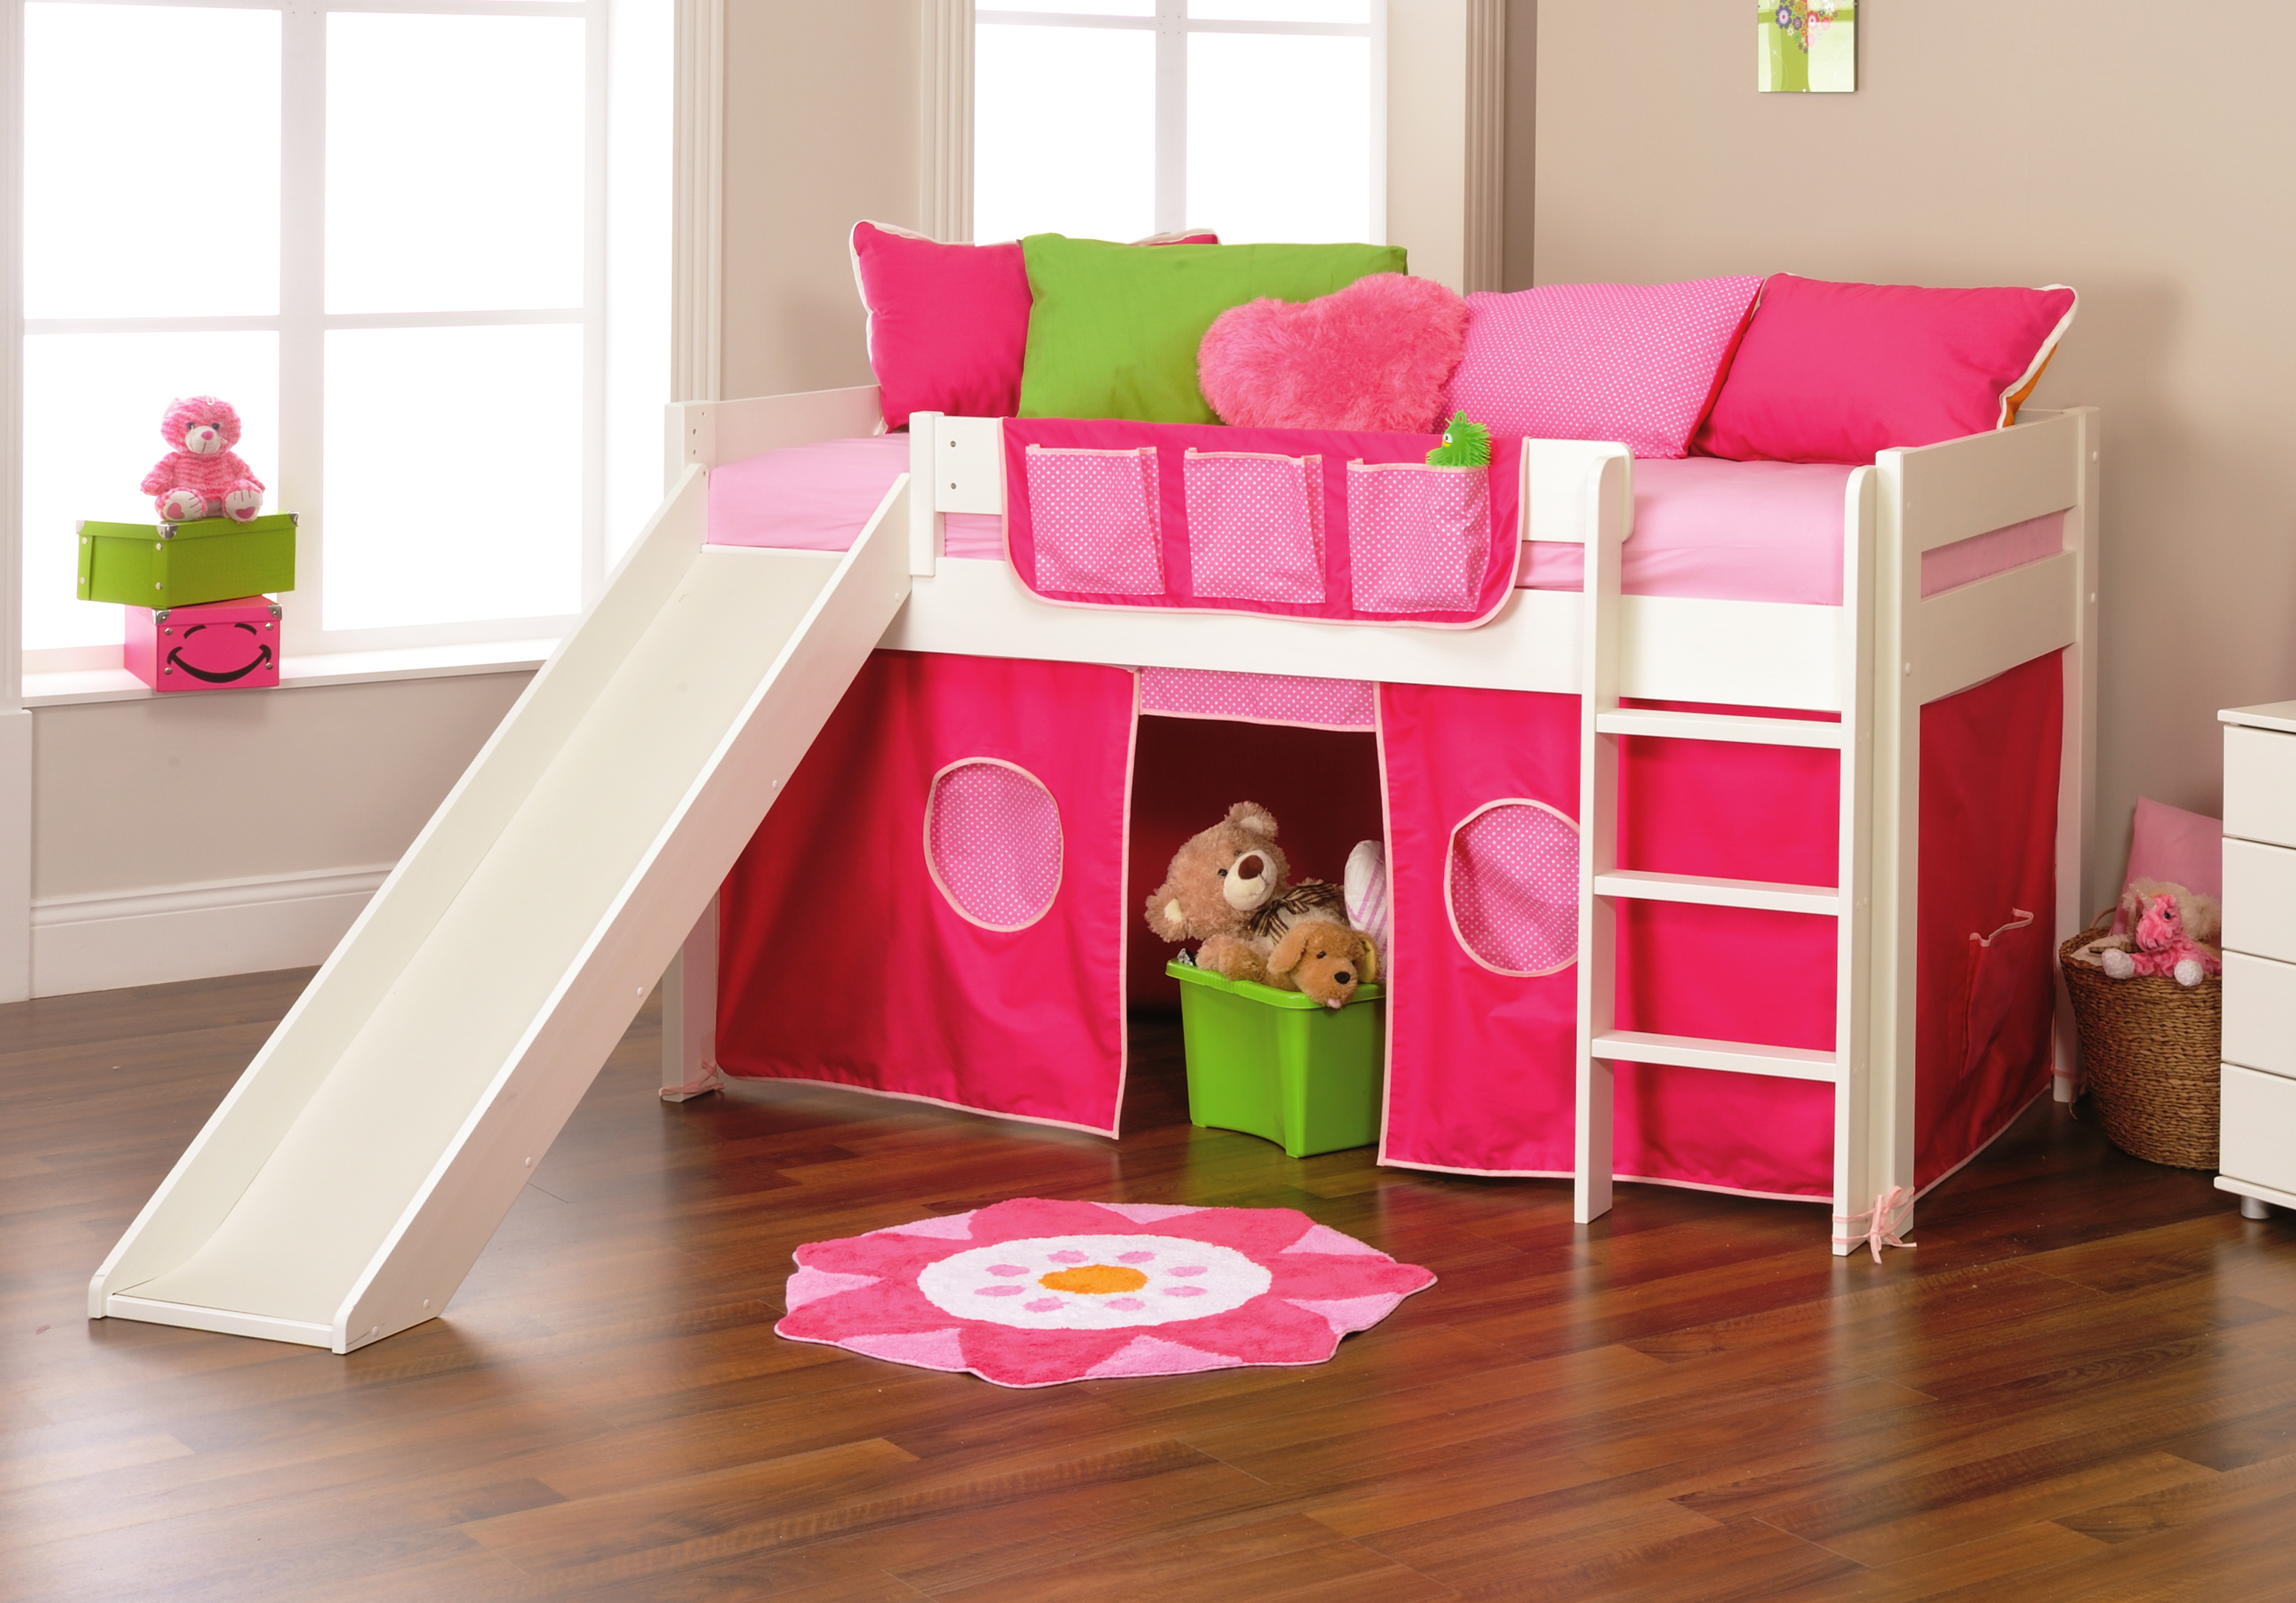 Stompa Classic Bunk Bed Stompa Play 3 Midsleeper With Slide Rainbow Wood